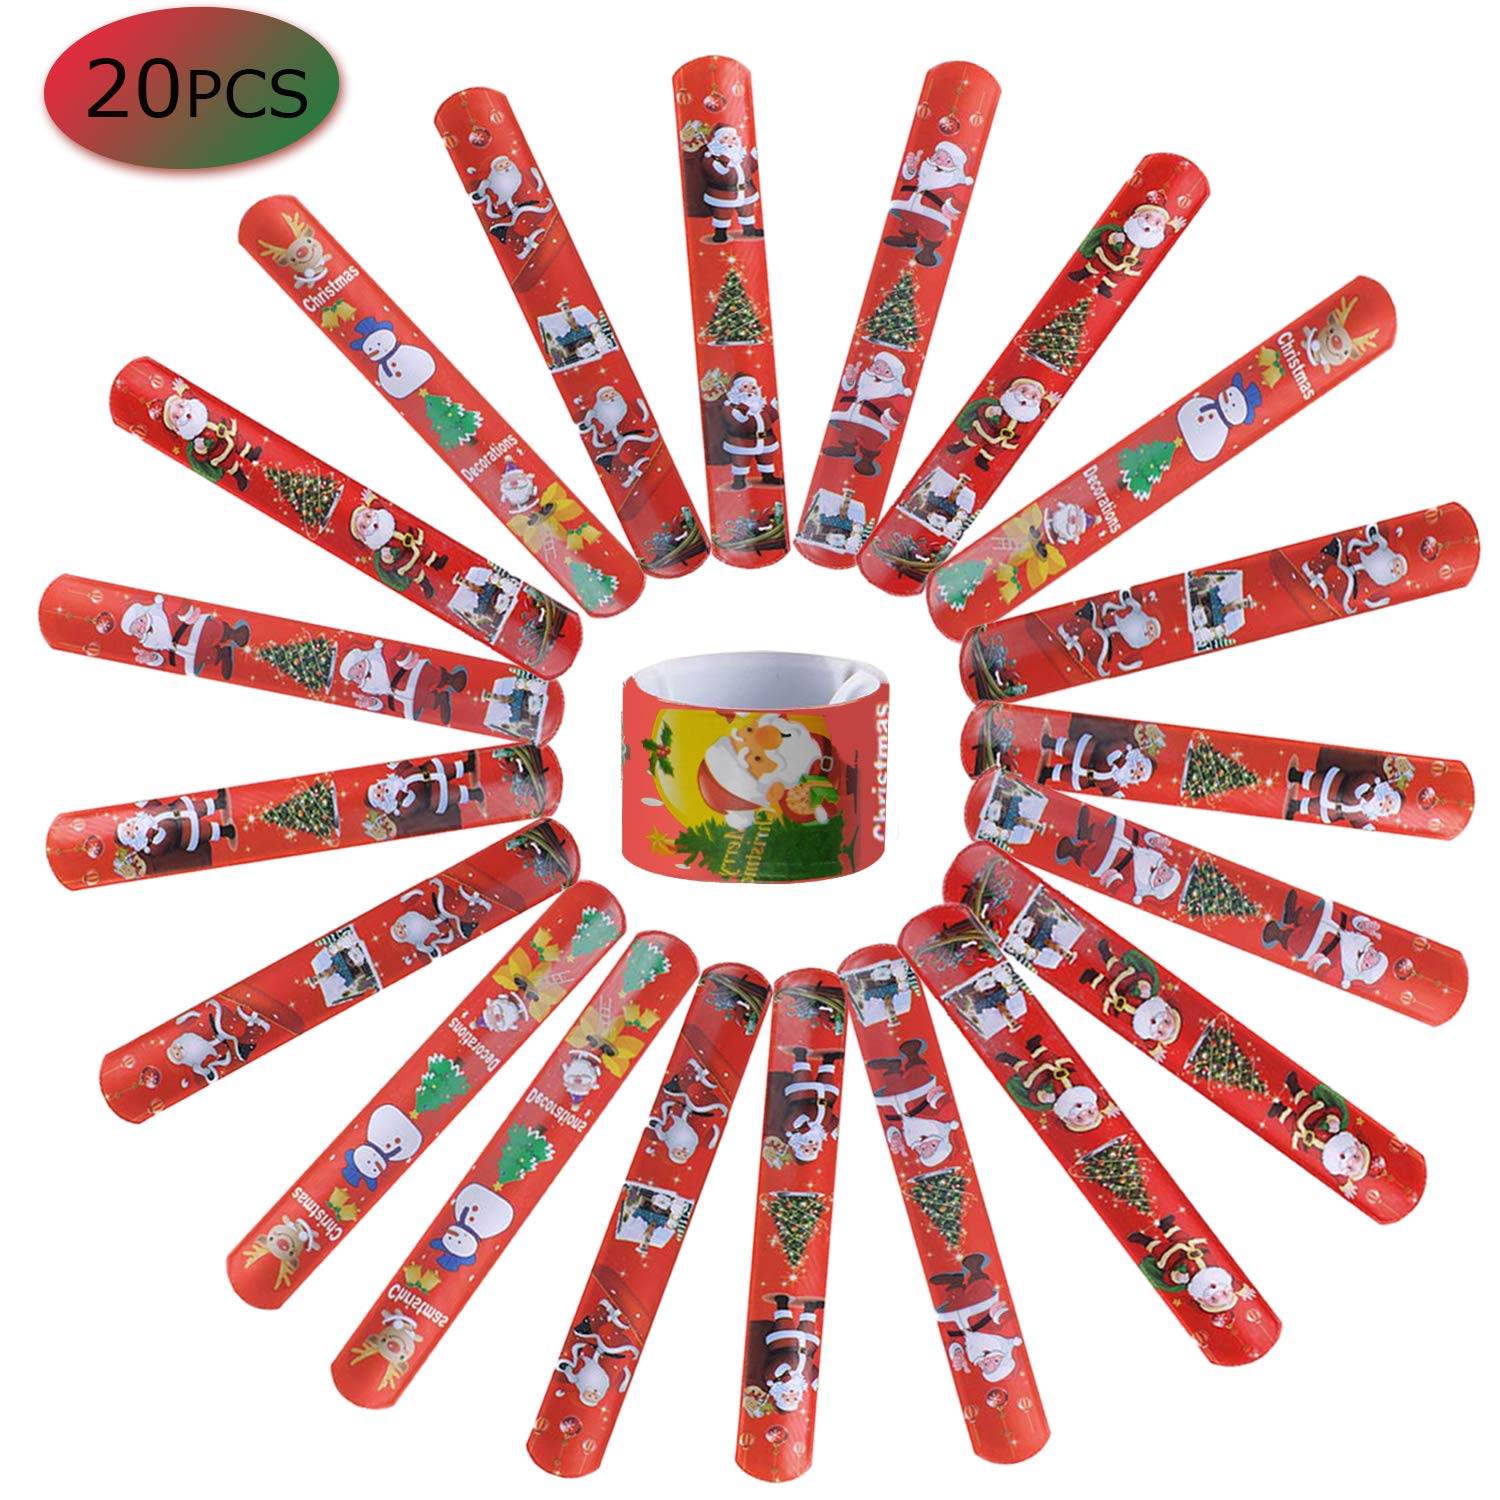 IRuiYinGo Christmas Slap Bracelets - 20 Pack Slap Bands with Santa Claus Snowman Christmas Tree Patterns for Kids Christmas Party Bag Fillers Favors Holiday Goodie Bag Little Toys